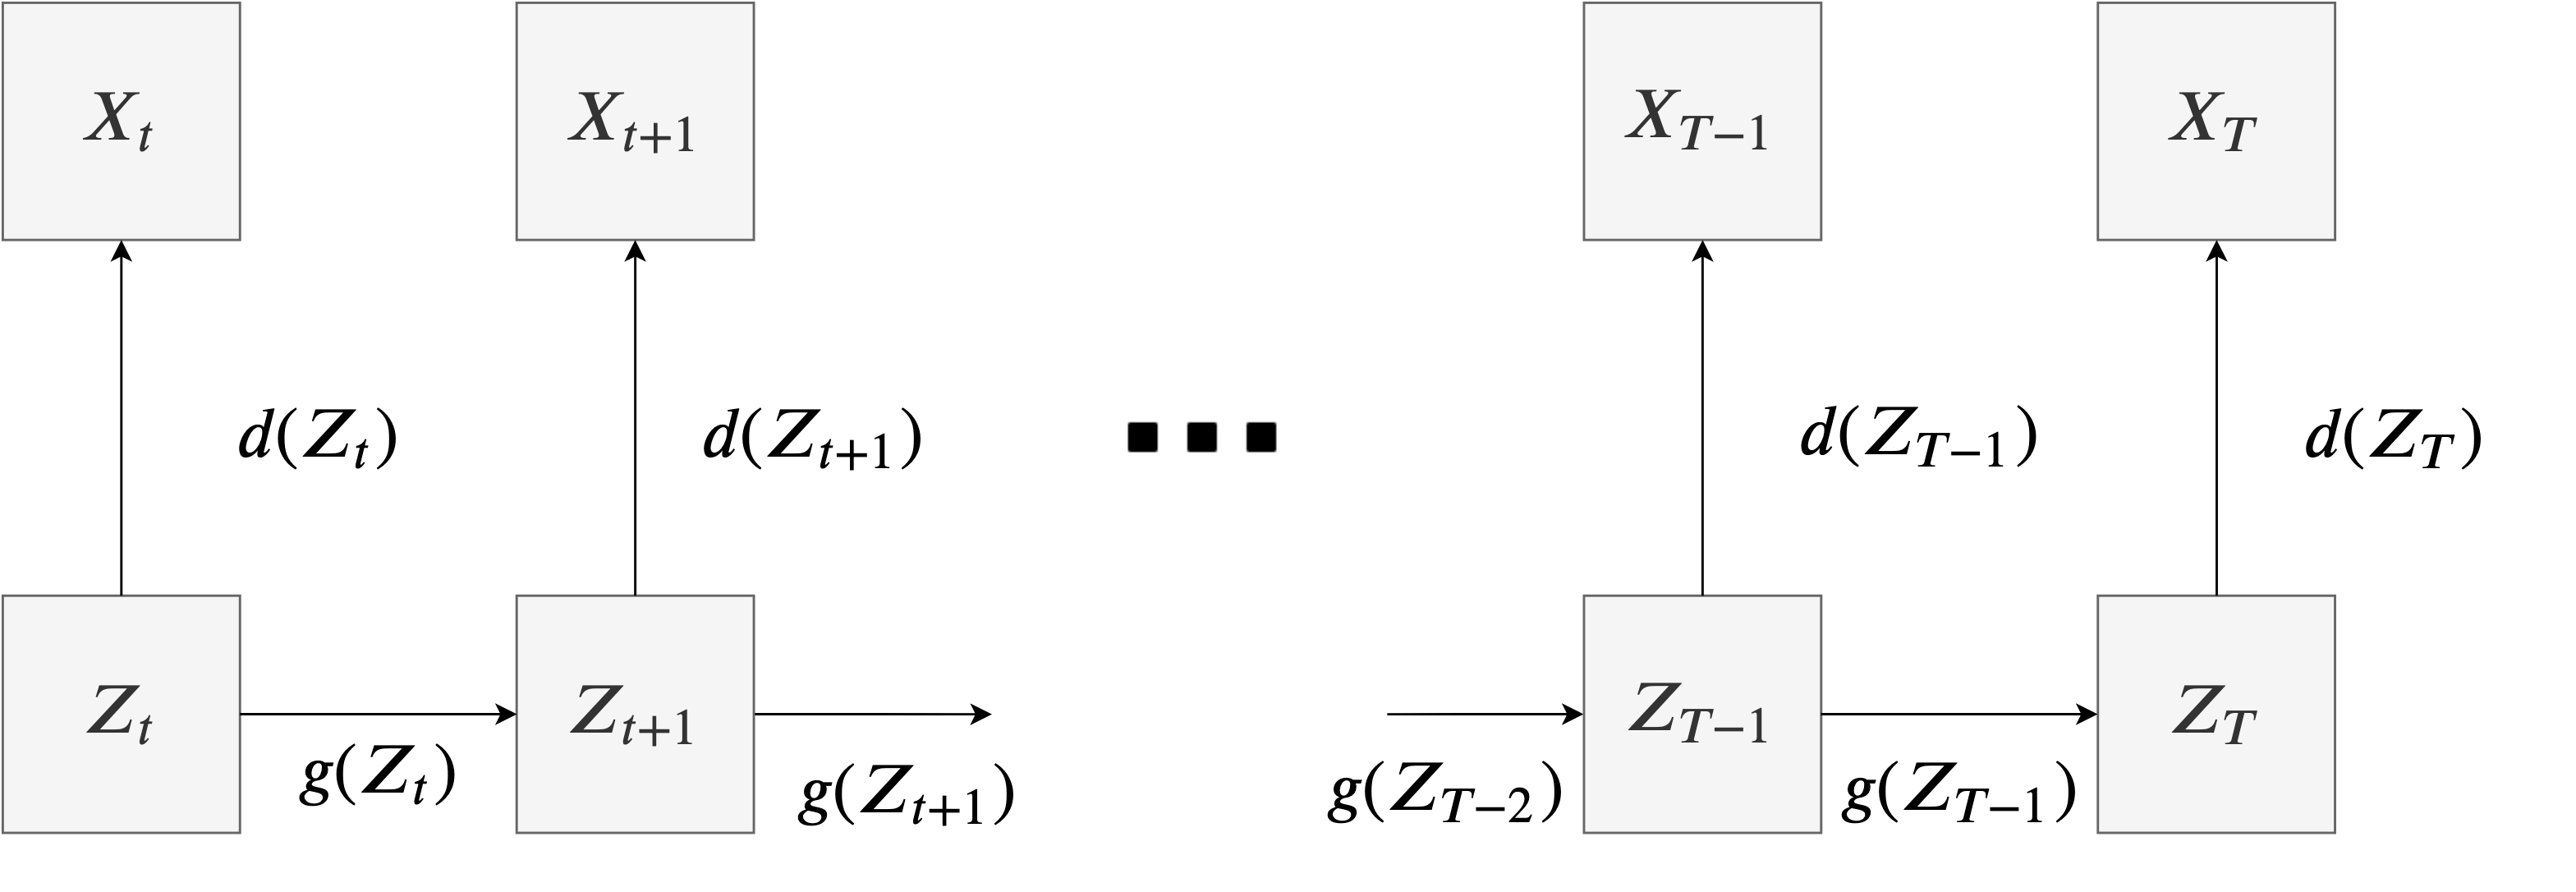 Financial Time Series Representation Learning